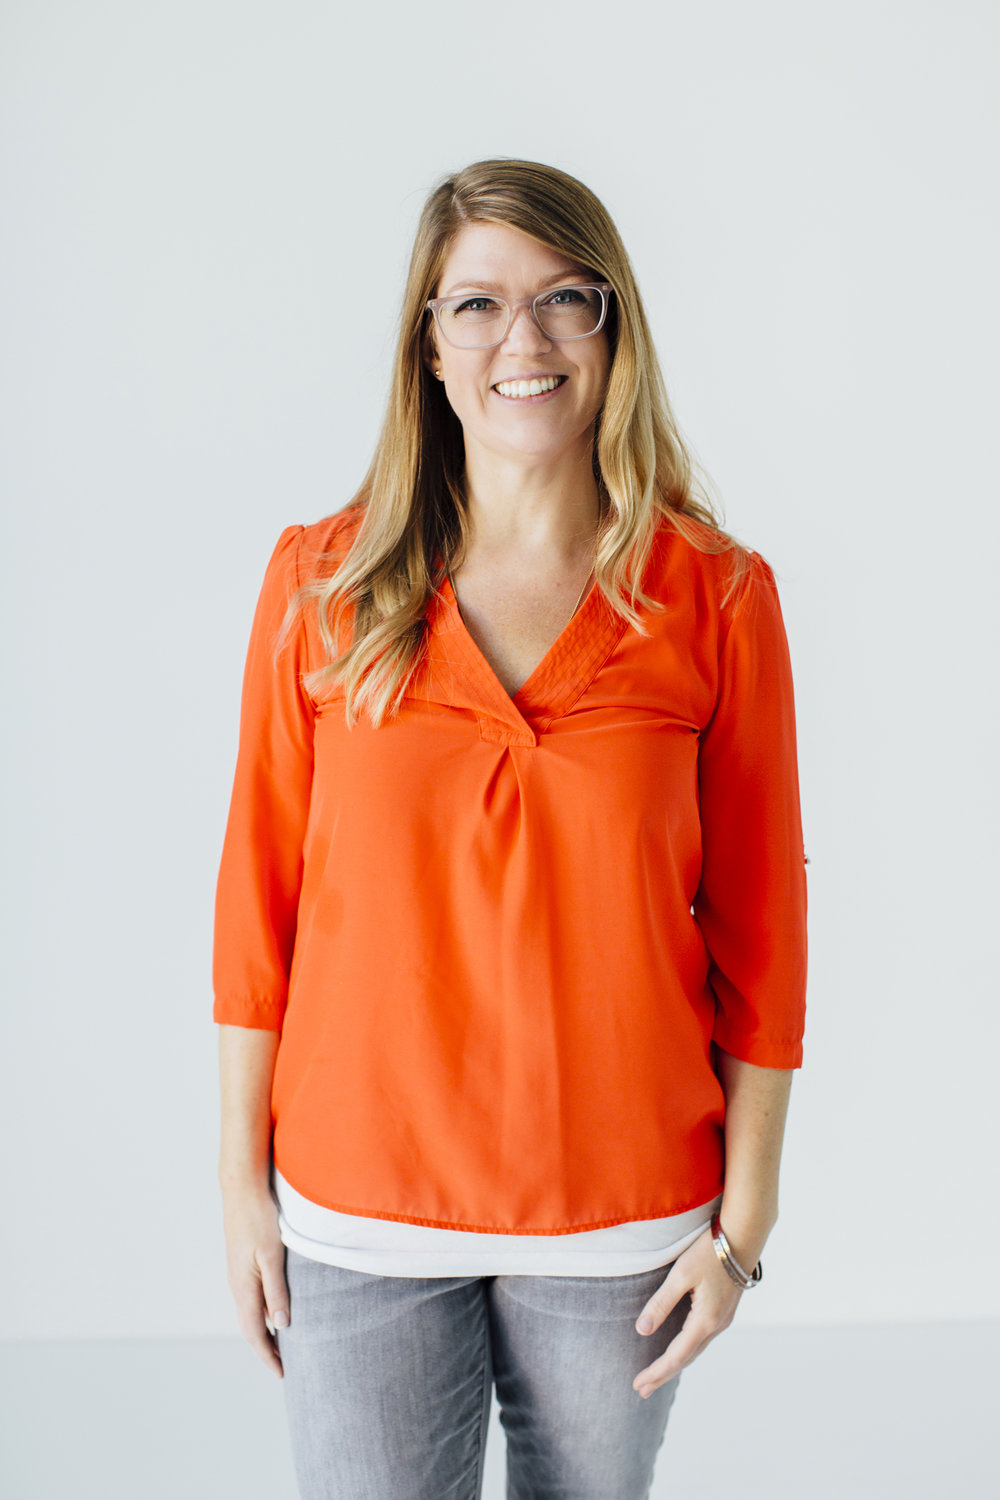 MEMBER SPOTLIGHT - Mary Bigham is the co-founder of Dish Works,one of the top culinary content agencies in the United States! Dish Works uses SUPPLY to create videos, photograph recipes + have all company meetings. Mary brings enthusiasim + energy to the SUPPLY community and fills our building with sweet smells + delicious food to try. Every member seems to show up on days that Dish Works is cooking up something.